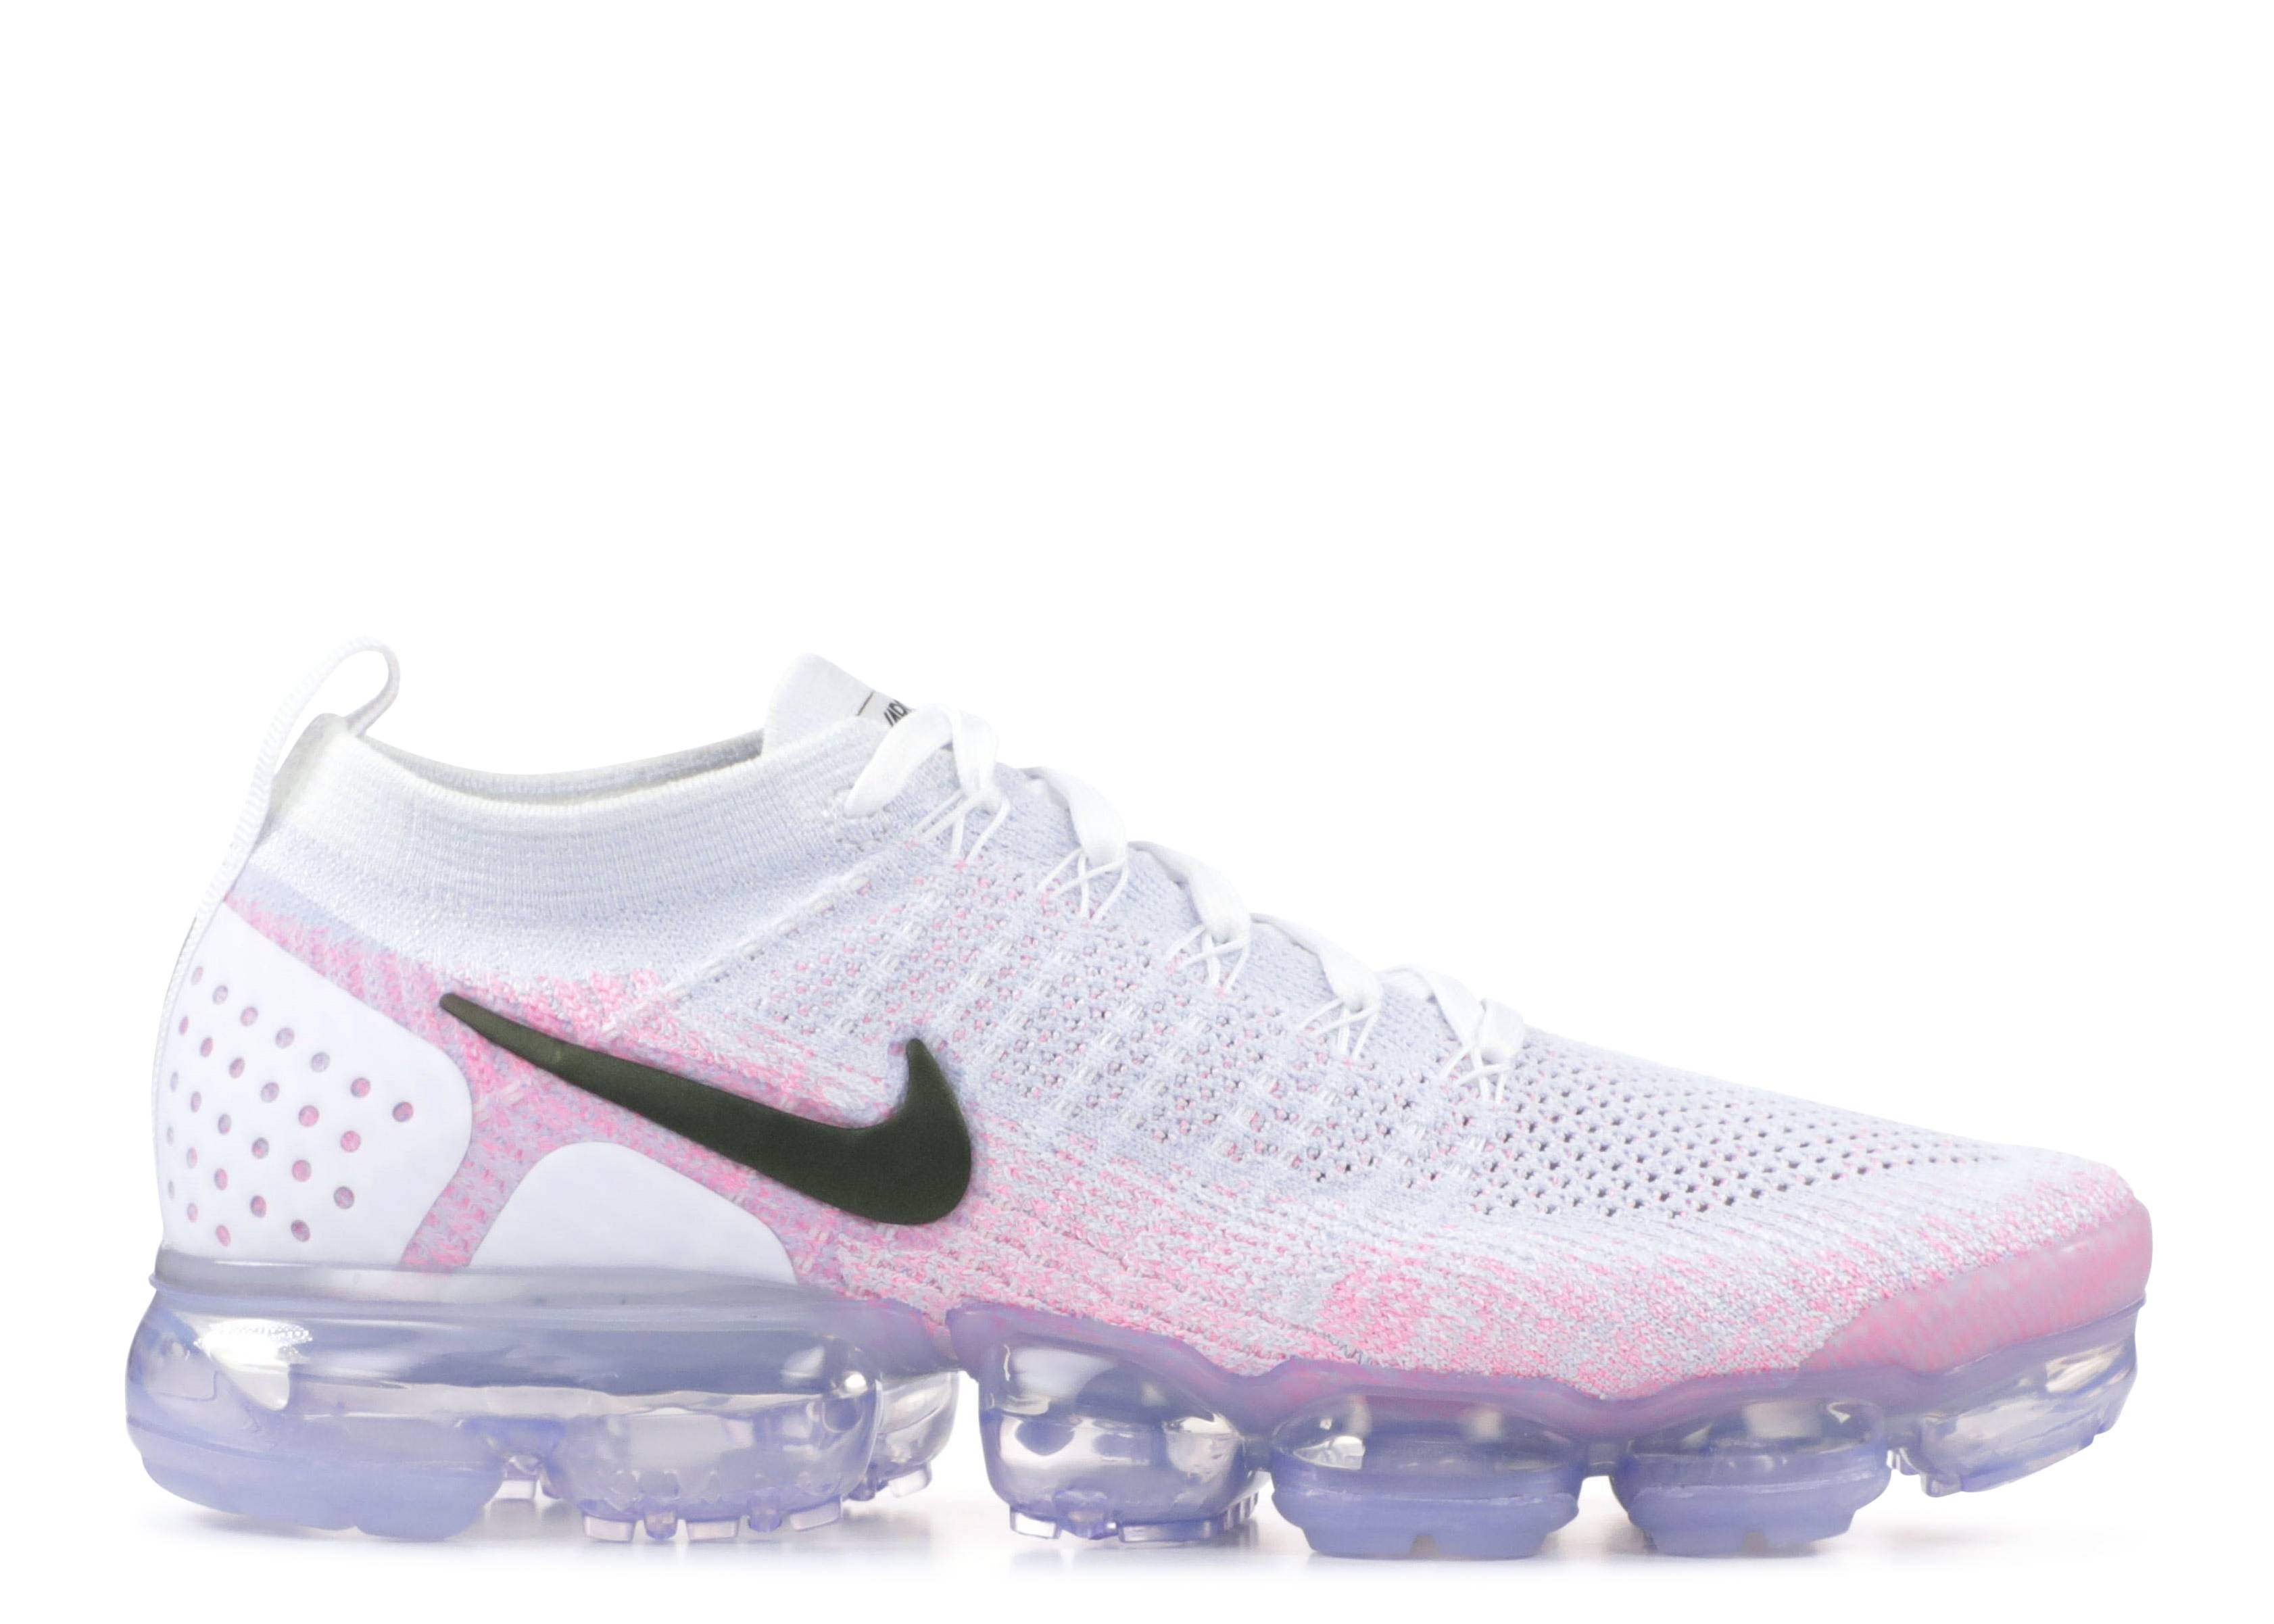 Nike Air VaporMax FlyKnit 2 - Nike - 942842 102 - white black ... 1fcf3cd5fcdf